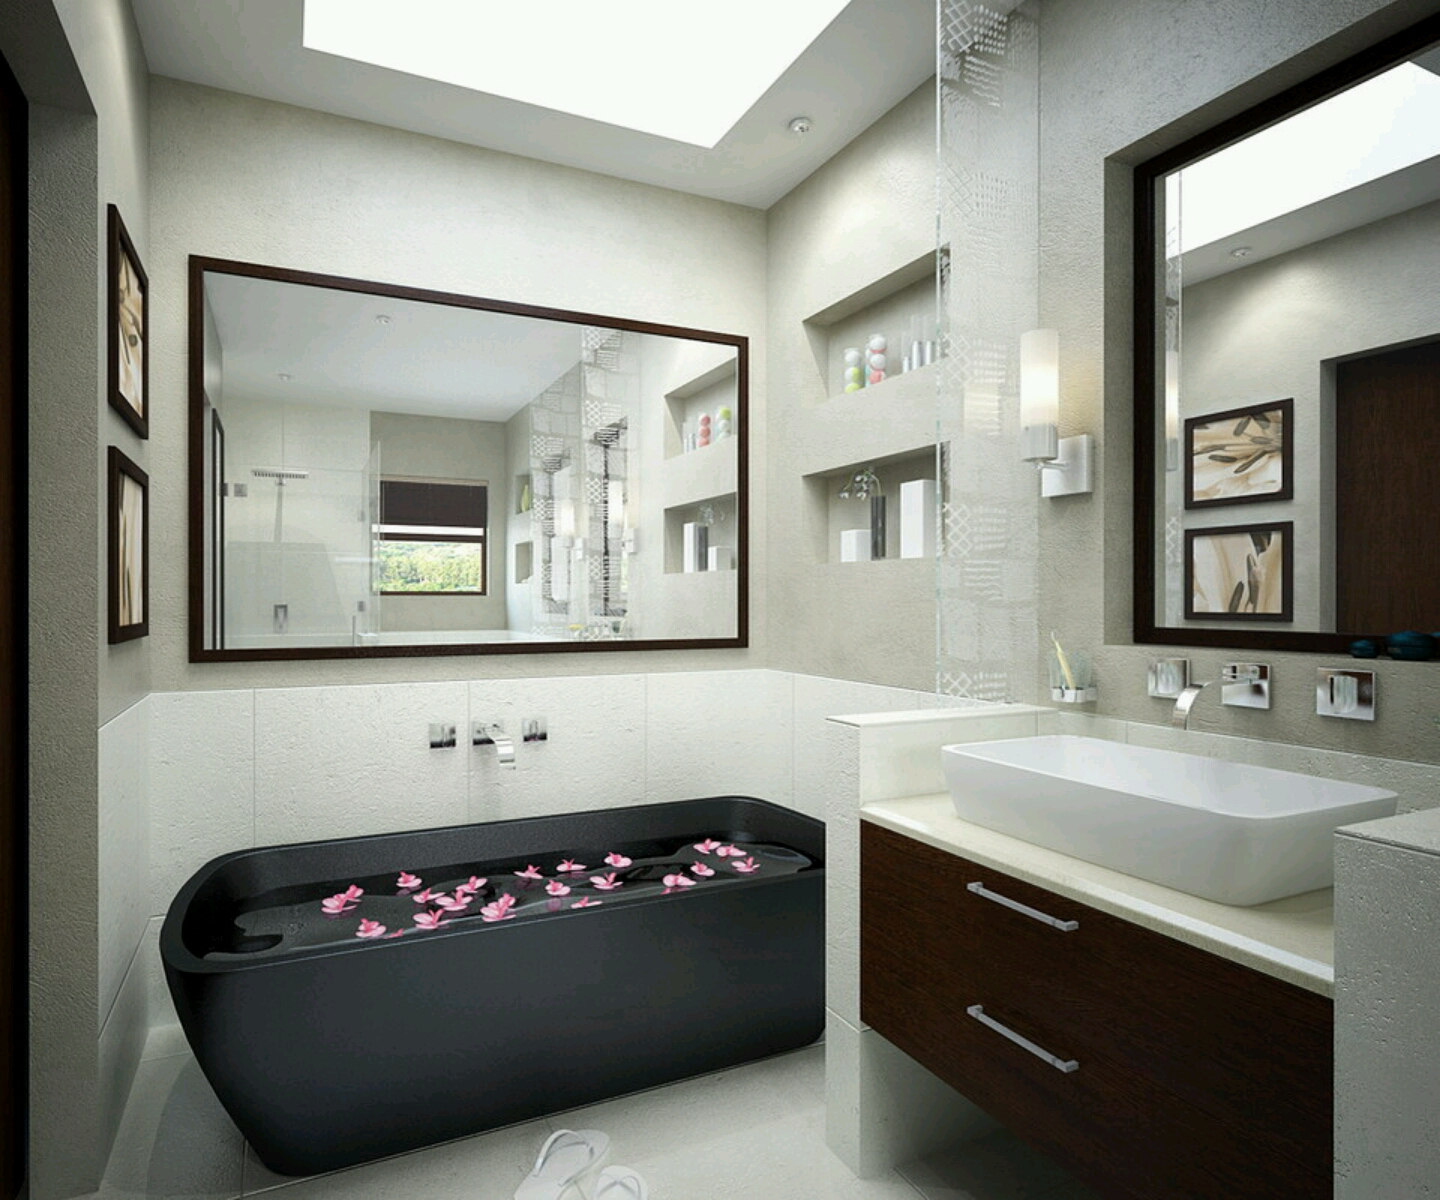 Modern bathrooms cabinets designs furniture gallery for Designer bathroom designs